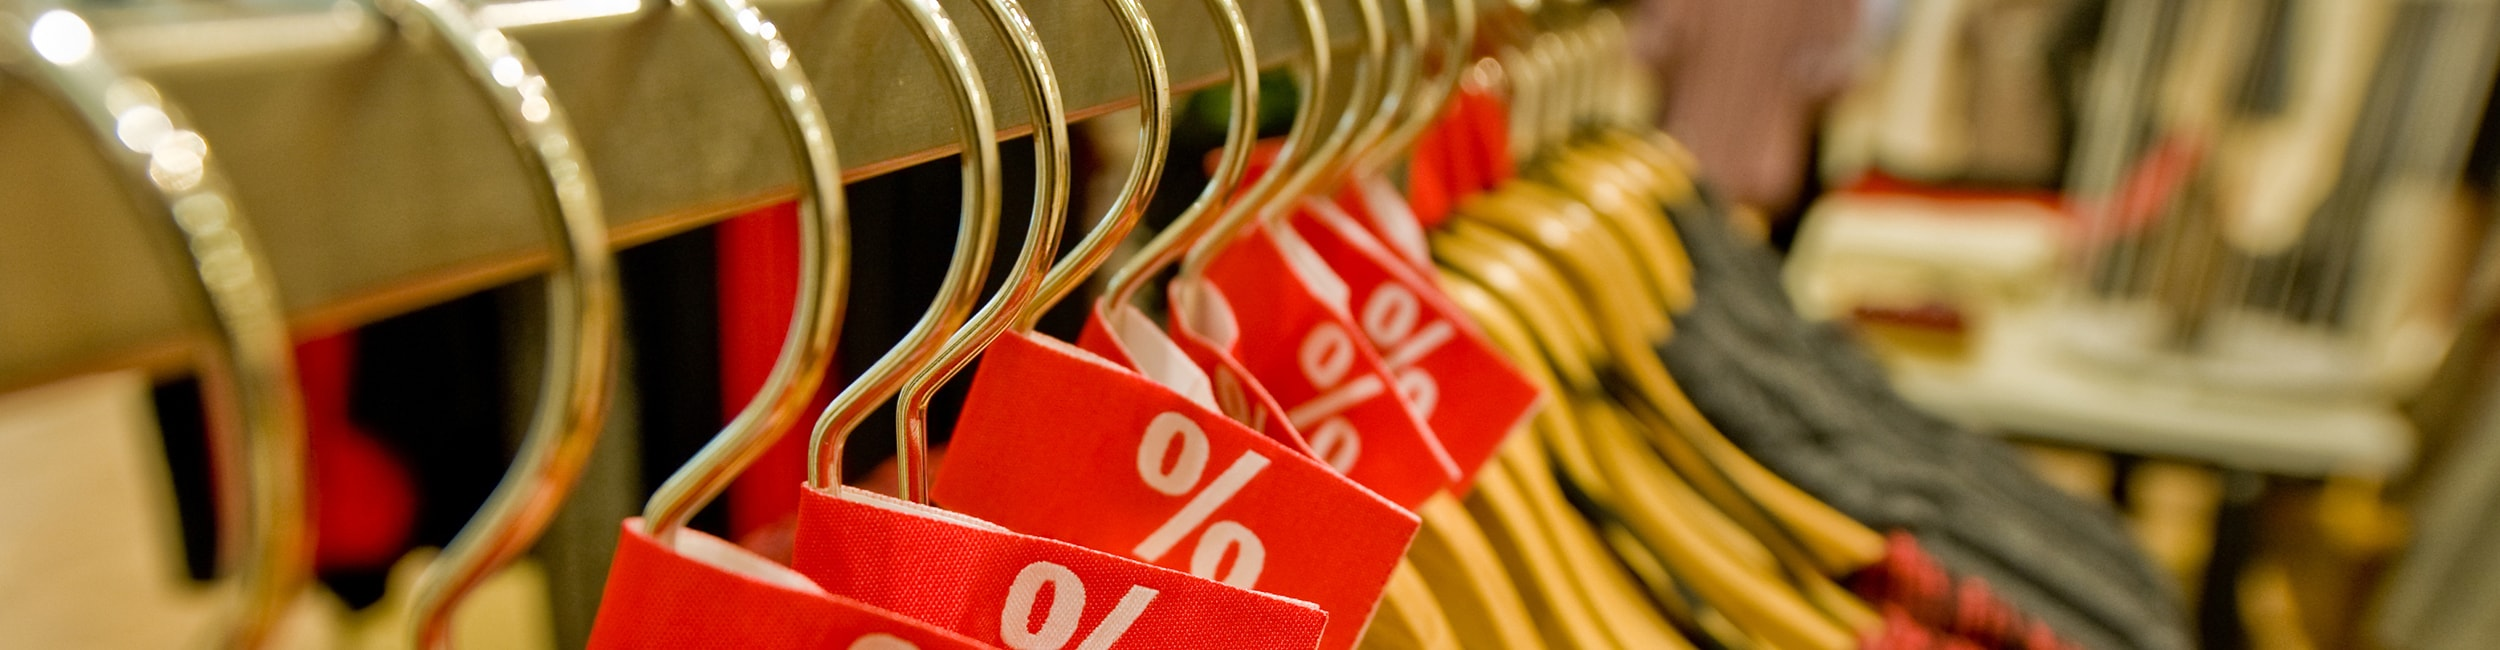 Clothes on a hanger with percent sales signs.